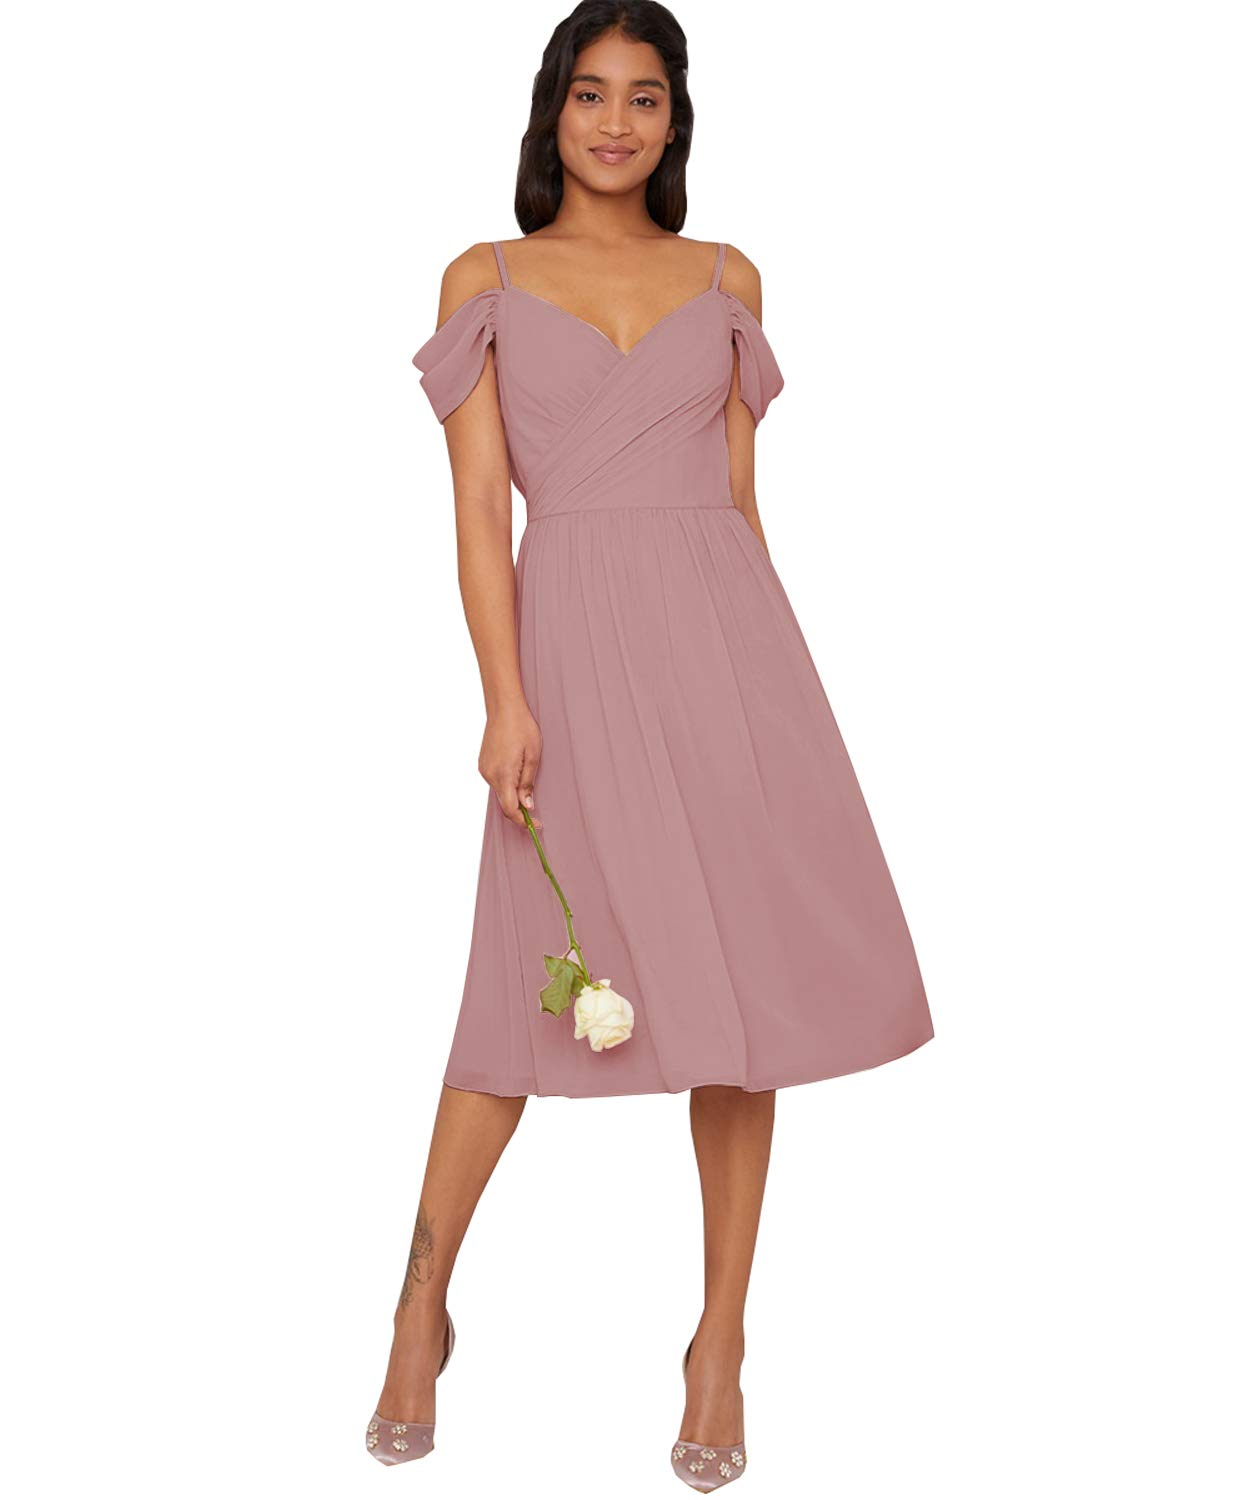 shopping latest design good Yilis Women's Spaghetti Strap A-line Bridesmaid Dress Short V-Neck Chiffon  Wedding Guest Dress Dusty Rose US12